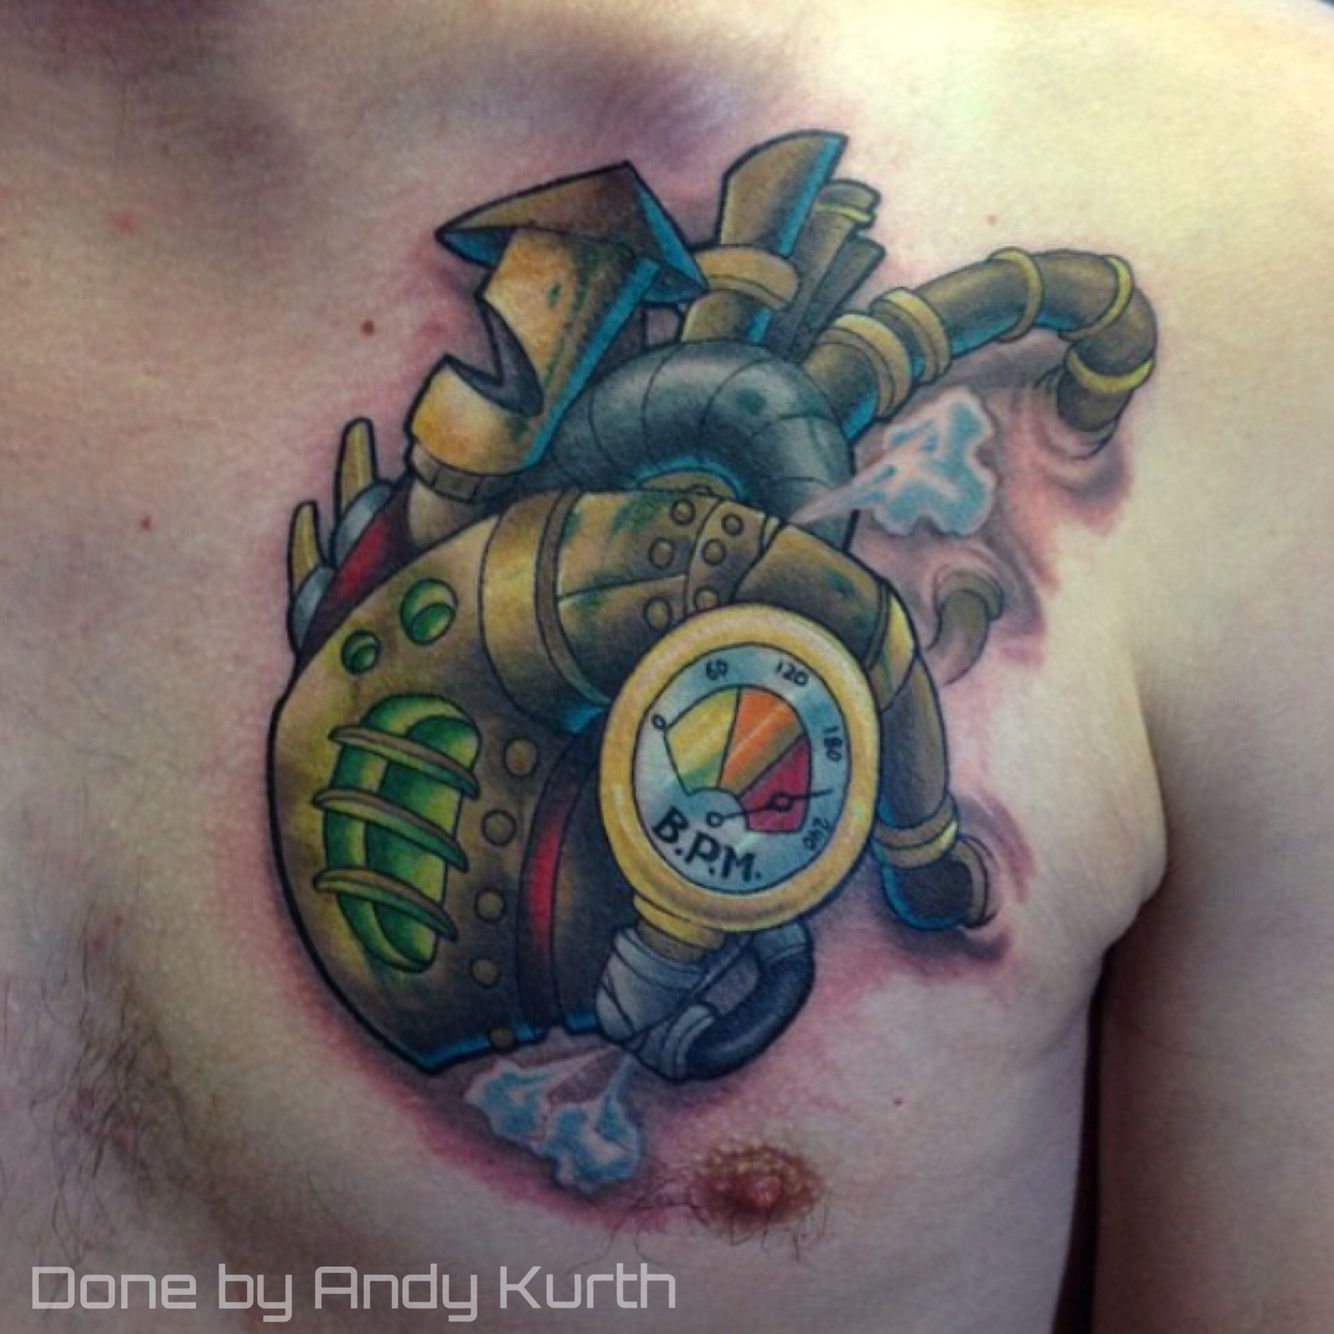 Electric chair tattoo - Steampunk Heart Done By Andy Kurth At Electric Chair Tattoo In Clio Michigan